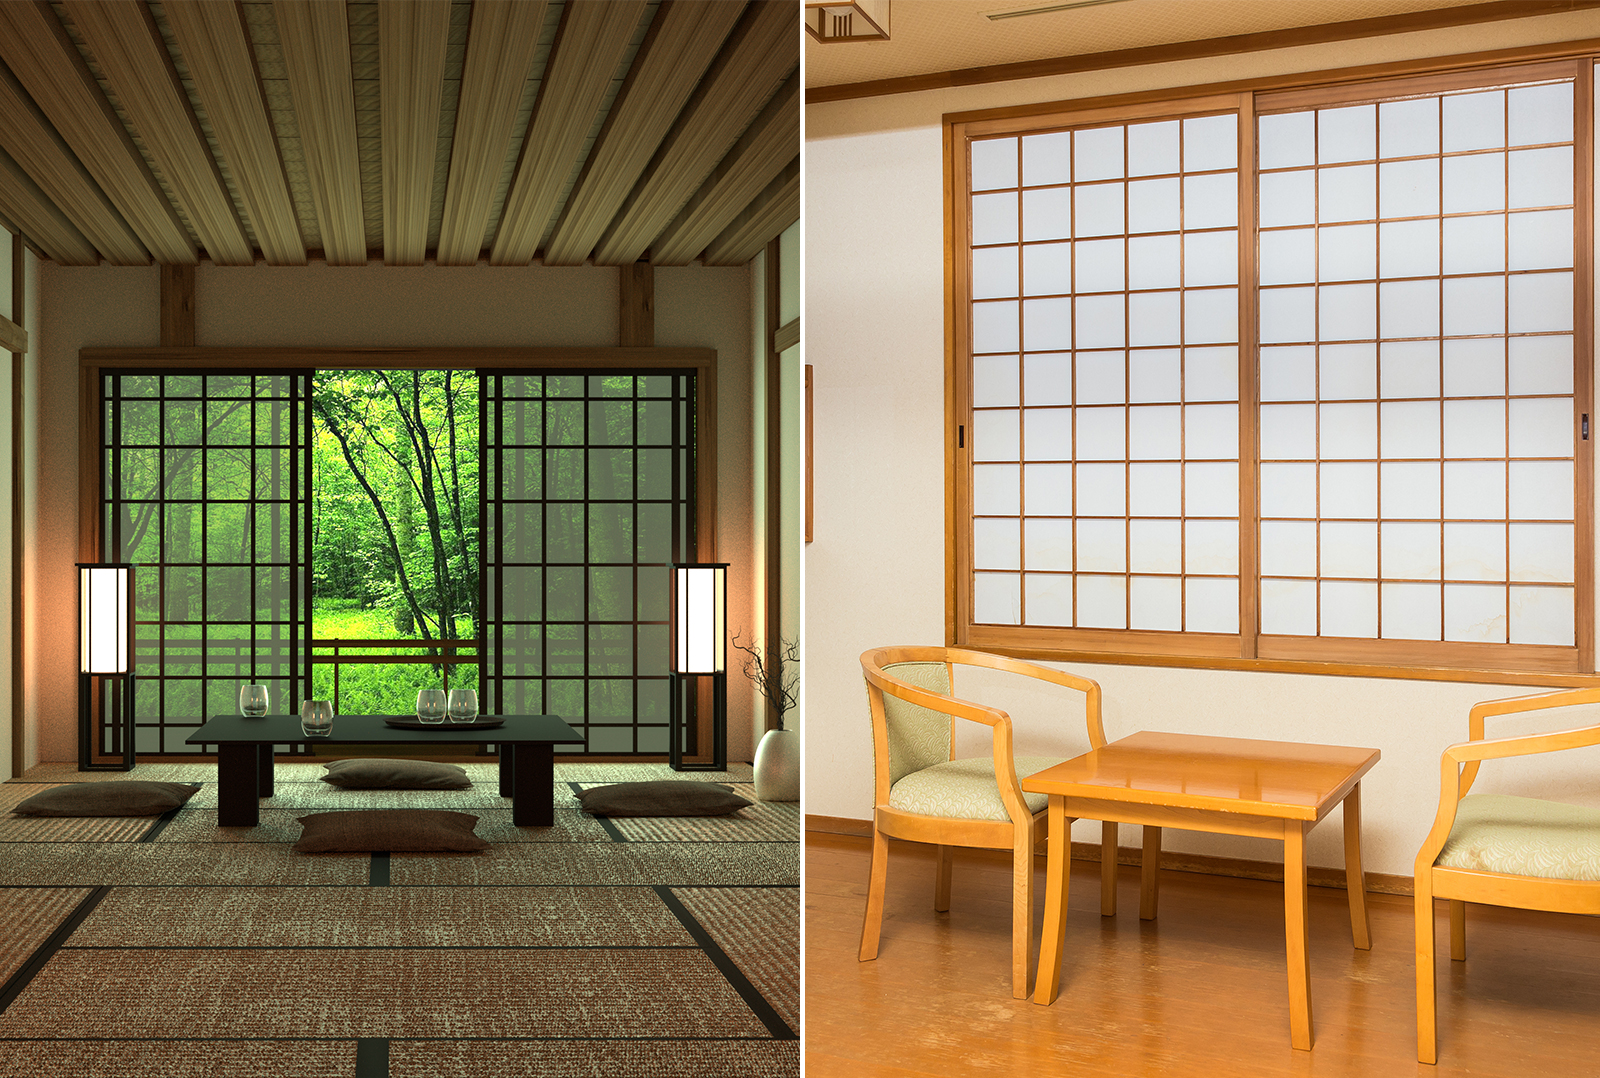 14 Best Japanese Furniture Options You Should Know About